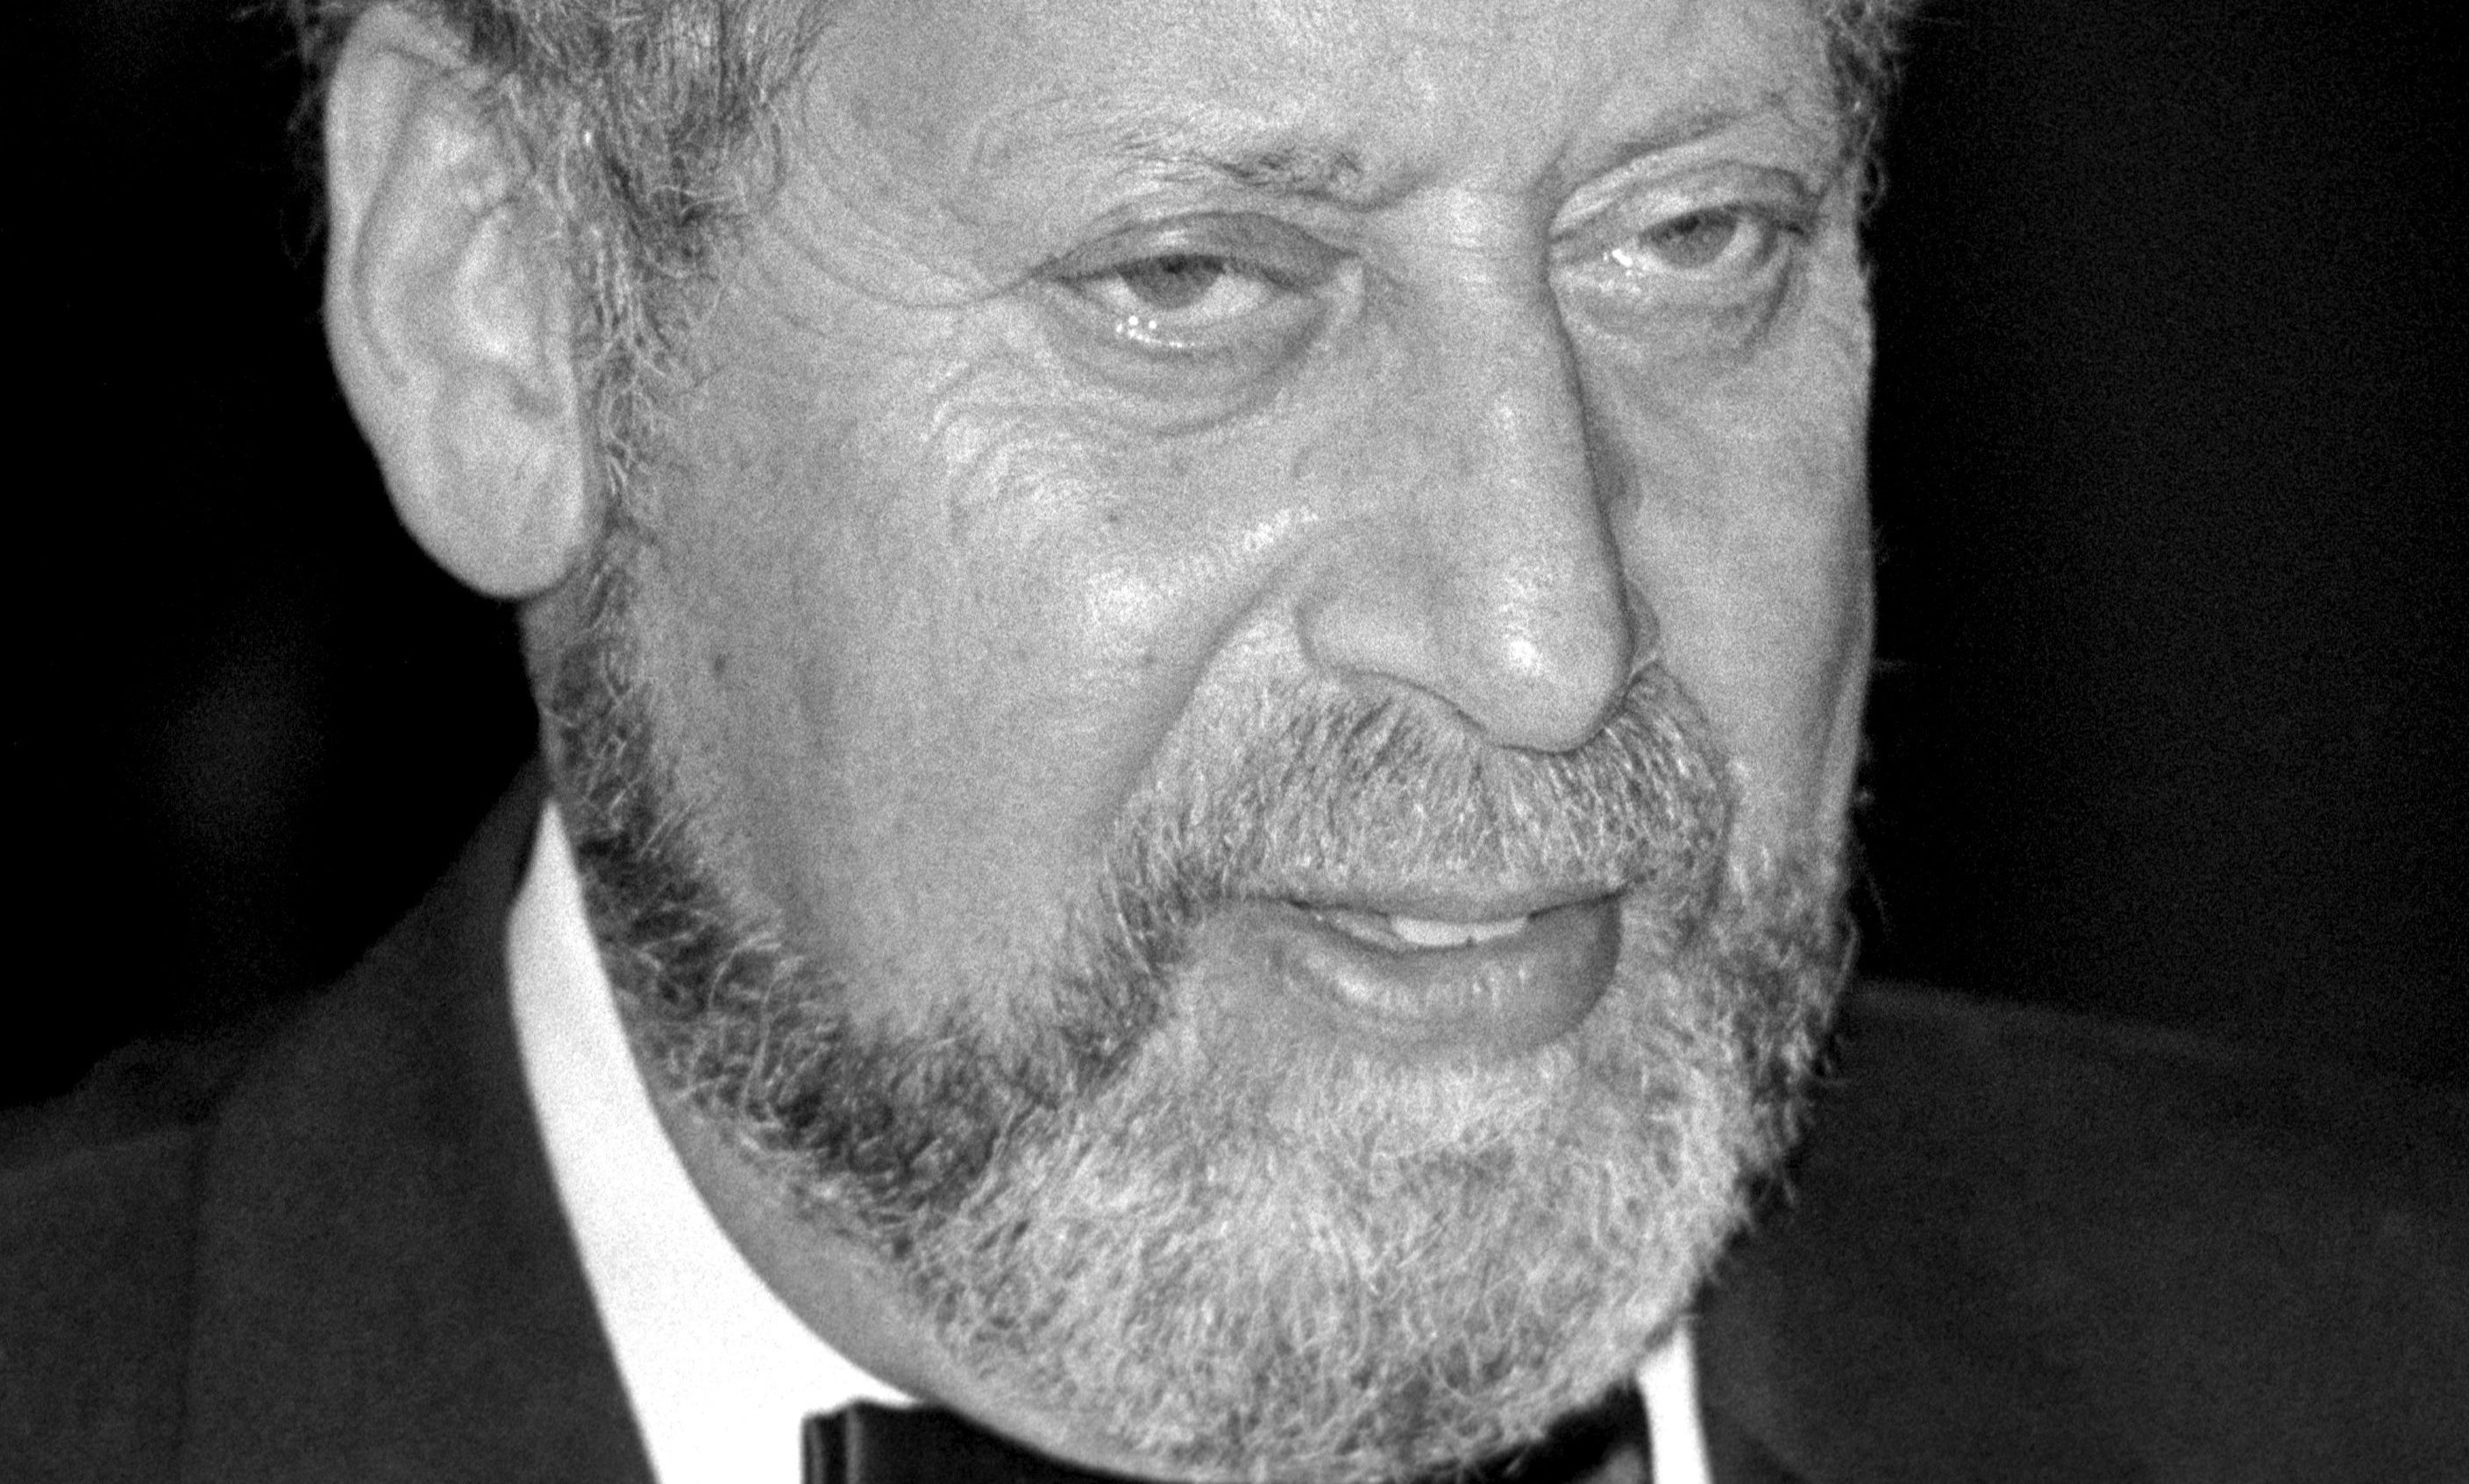 """Sir Clement Freud is said to have been seen as a """"sexual predator"""" during his time as Dundee University rector during the 1970s. He served as rector of St Andrews University from 2002 to 2005."""